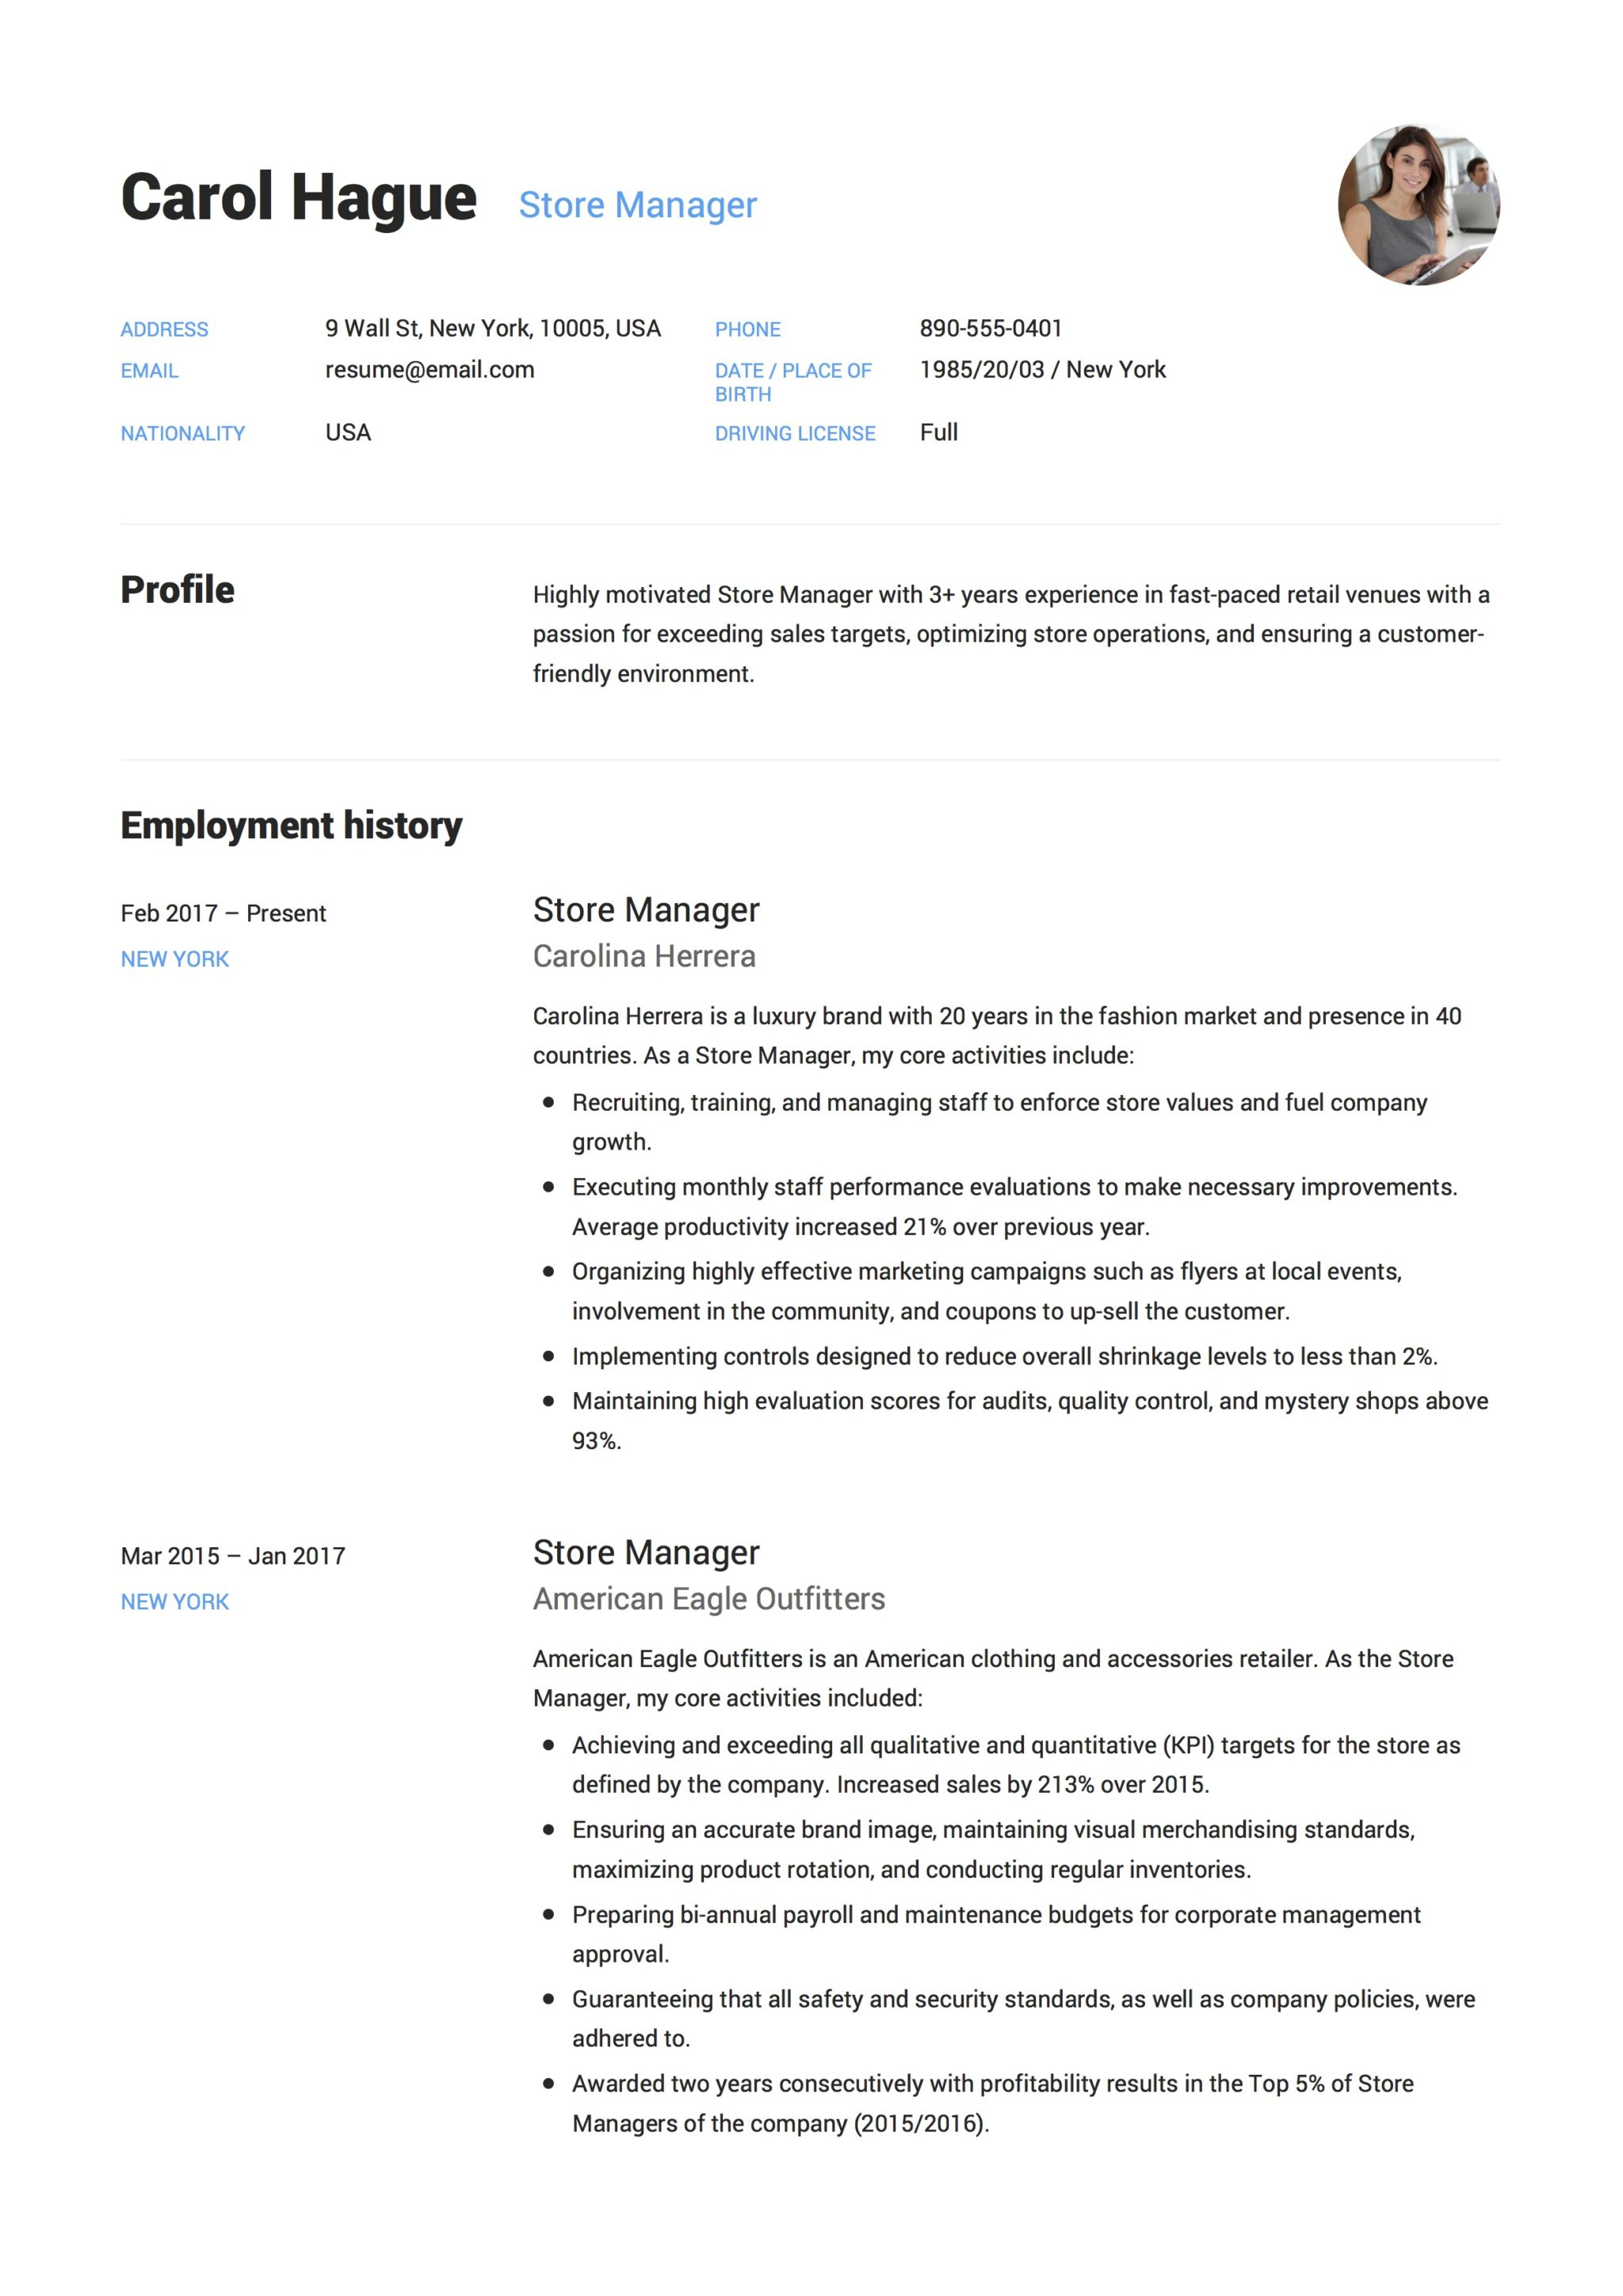 Store Manager Resume Guide 12 Resume Samples Pdf 2020